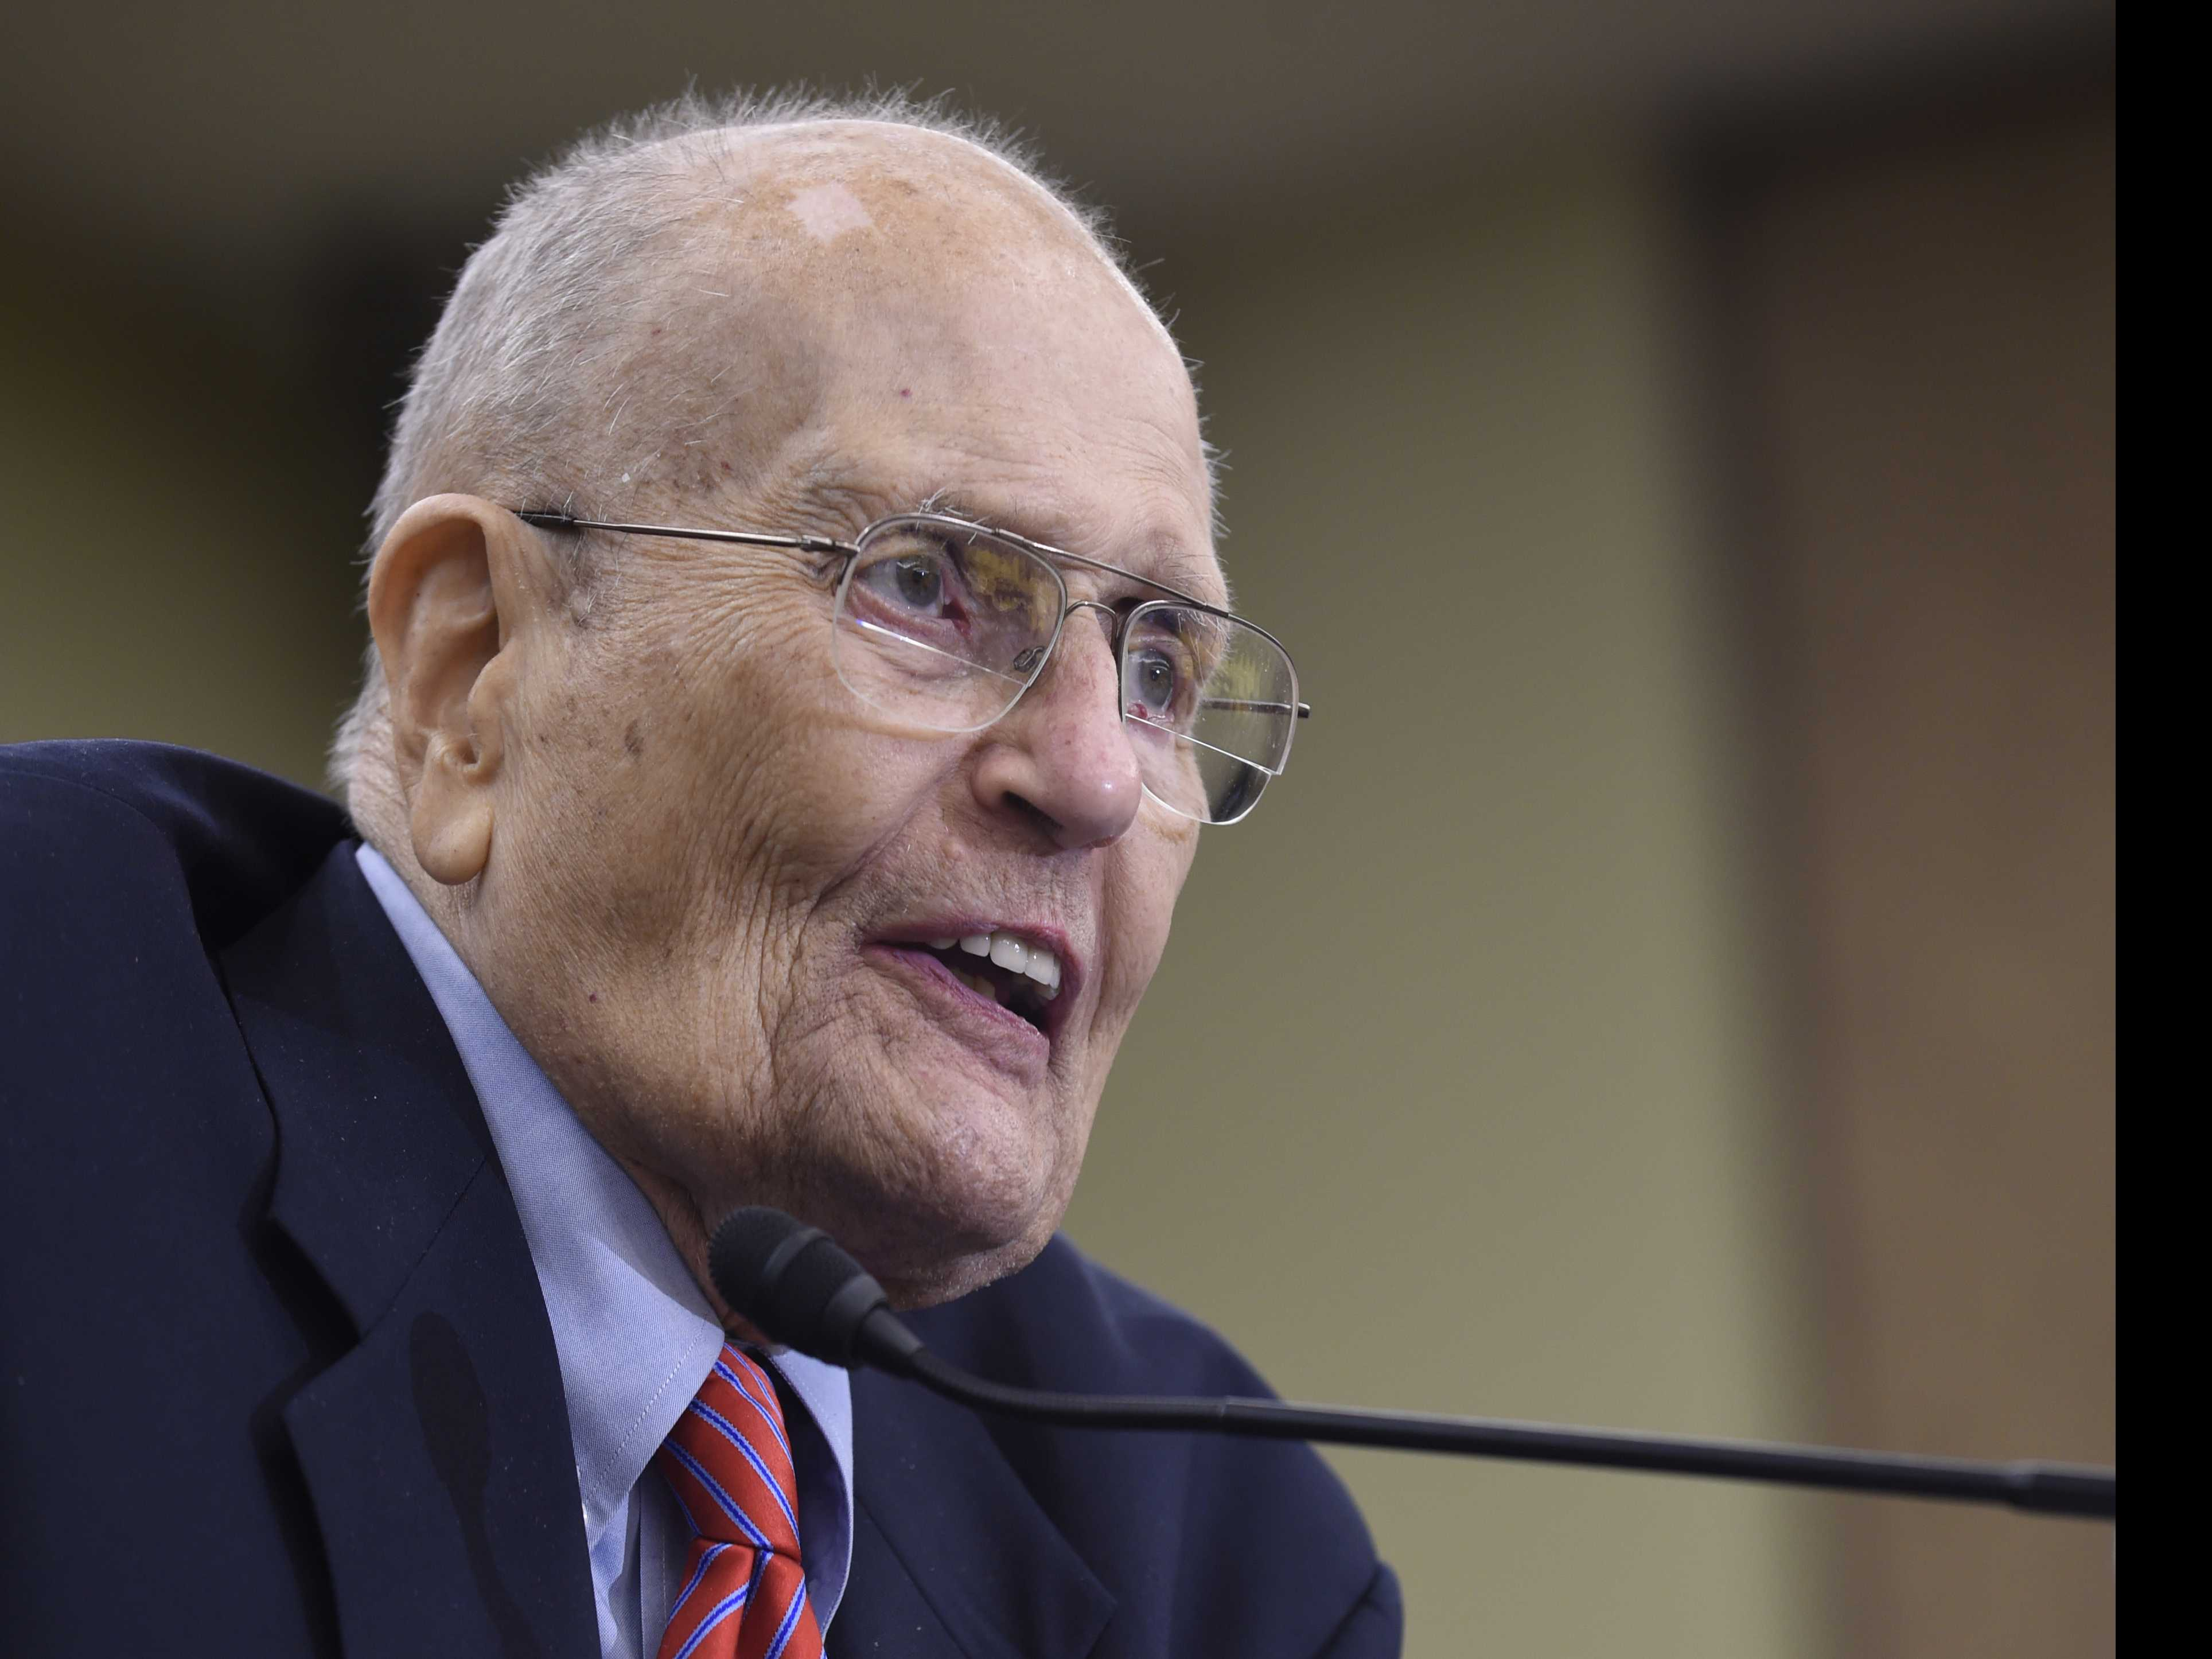 John Dingell, Longest Serving Member of Congress, Dies at 92